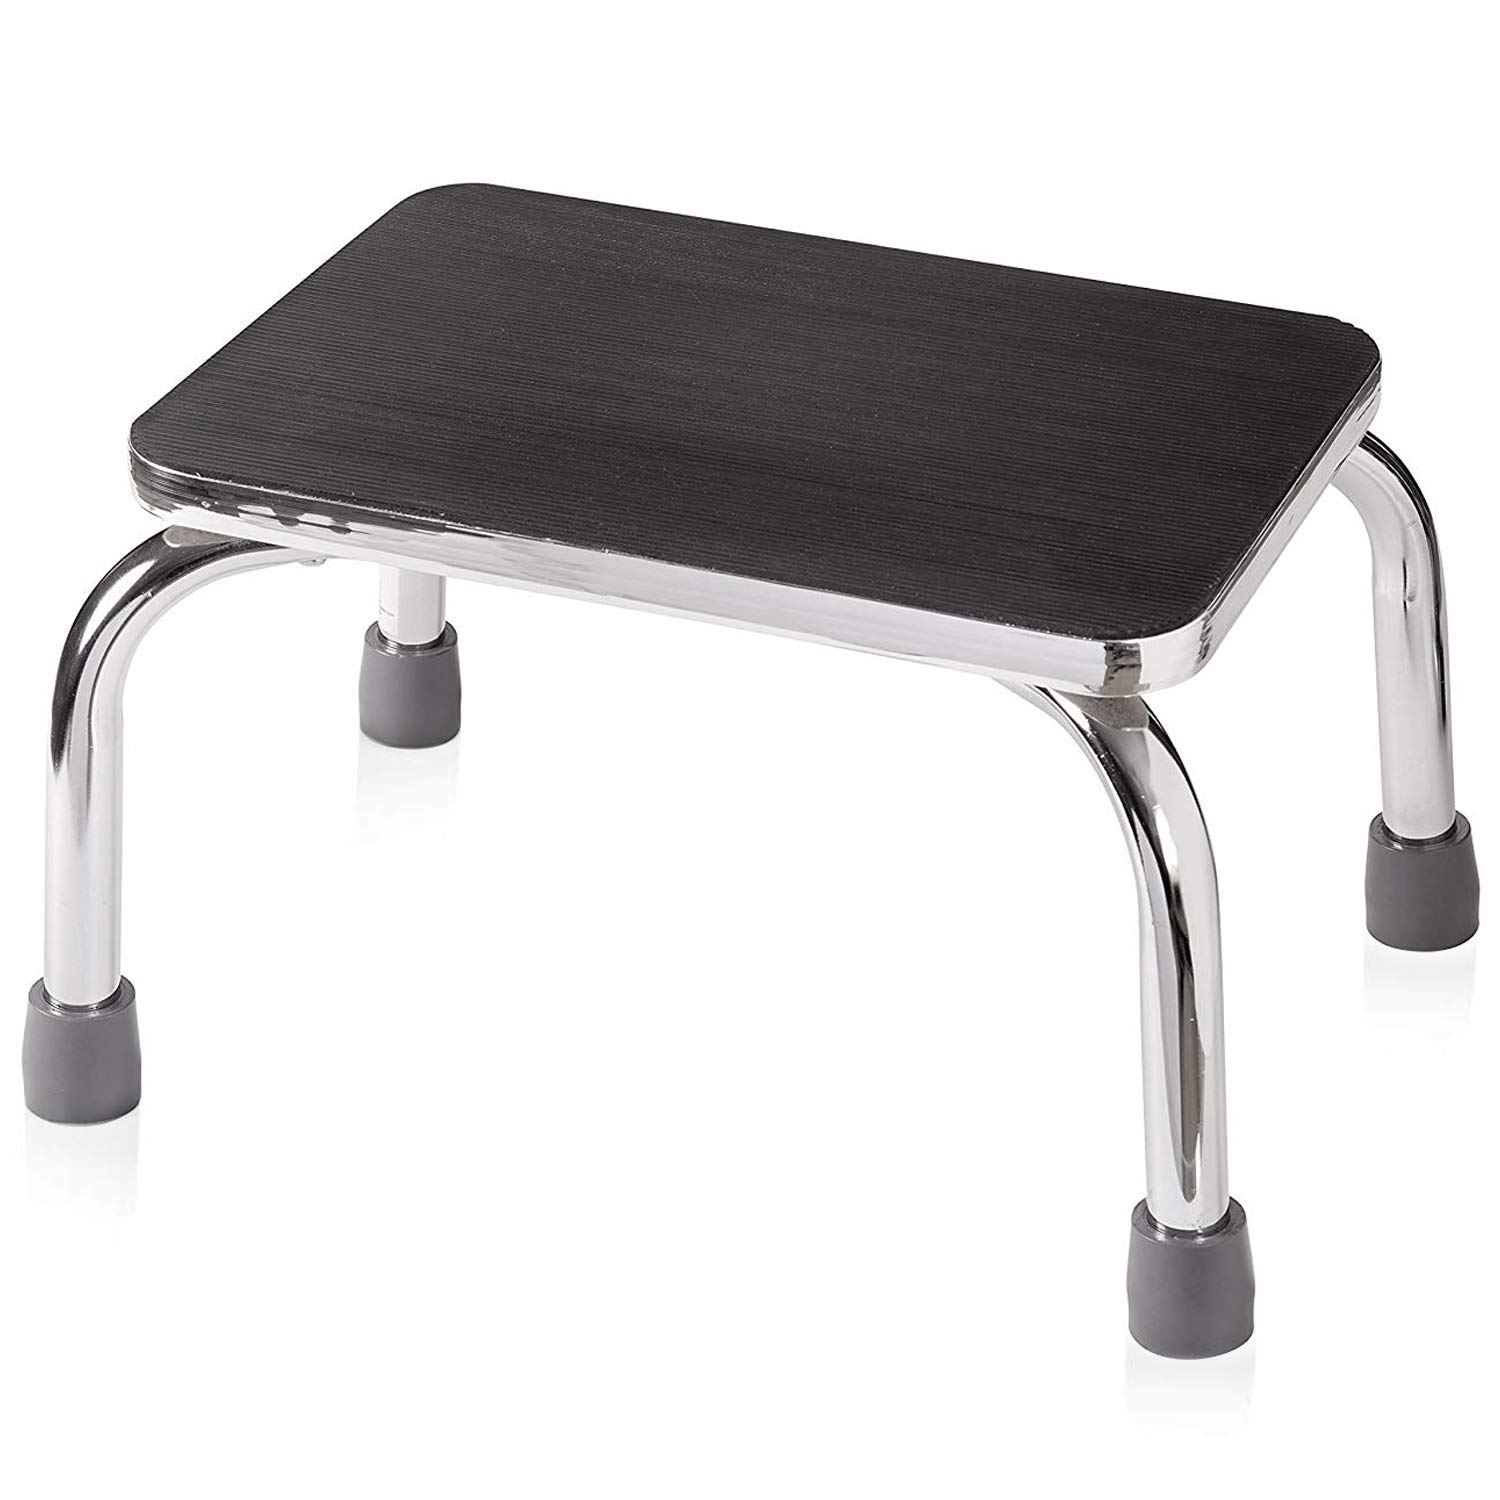 DMI Step Stool for Adults and Seniors, Heavy Duty Metal Stepping Stool for High Beds, Portable Foot Step Stool for Elderly, 250 lb Weight Capacity. by Duro-Med